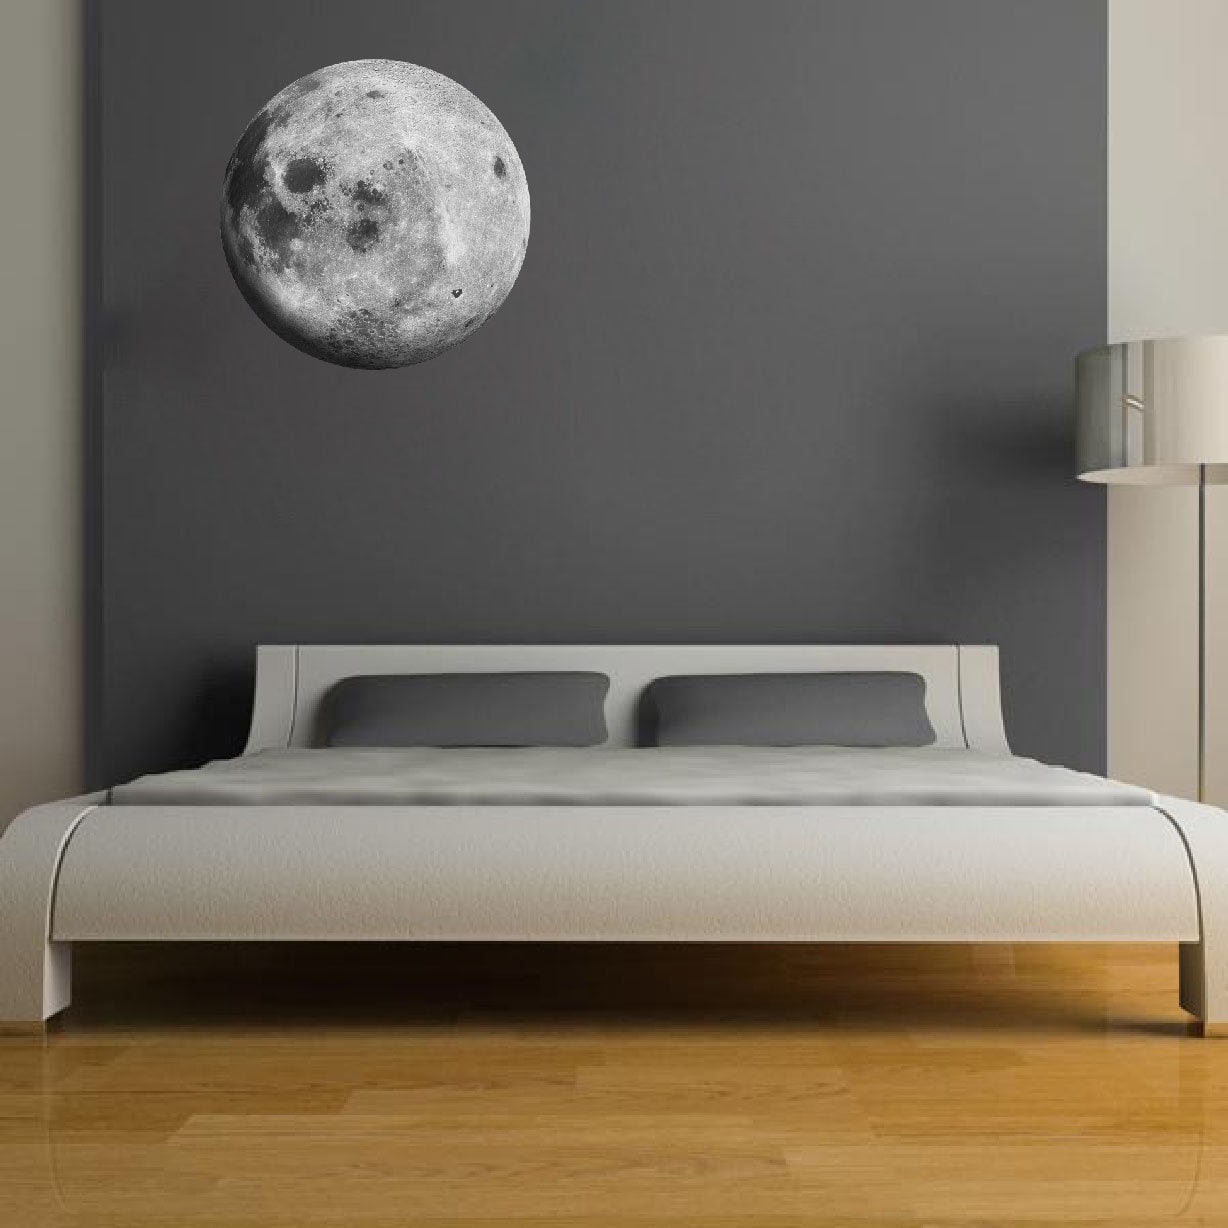 moon wall decal sricker peel and stick moon wall art by. Black Bedroom Furniture Sets. Home Design Ideas